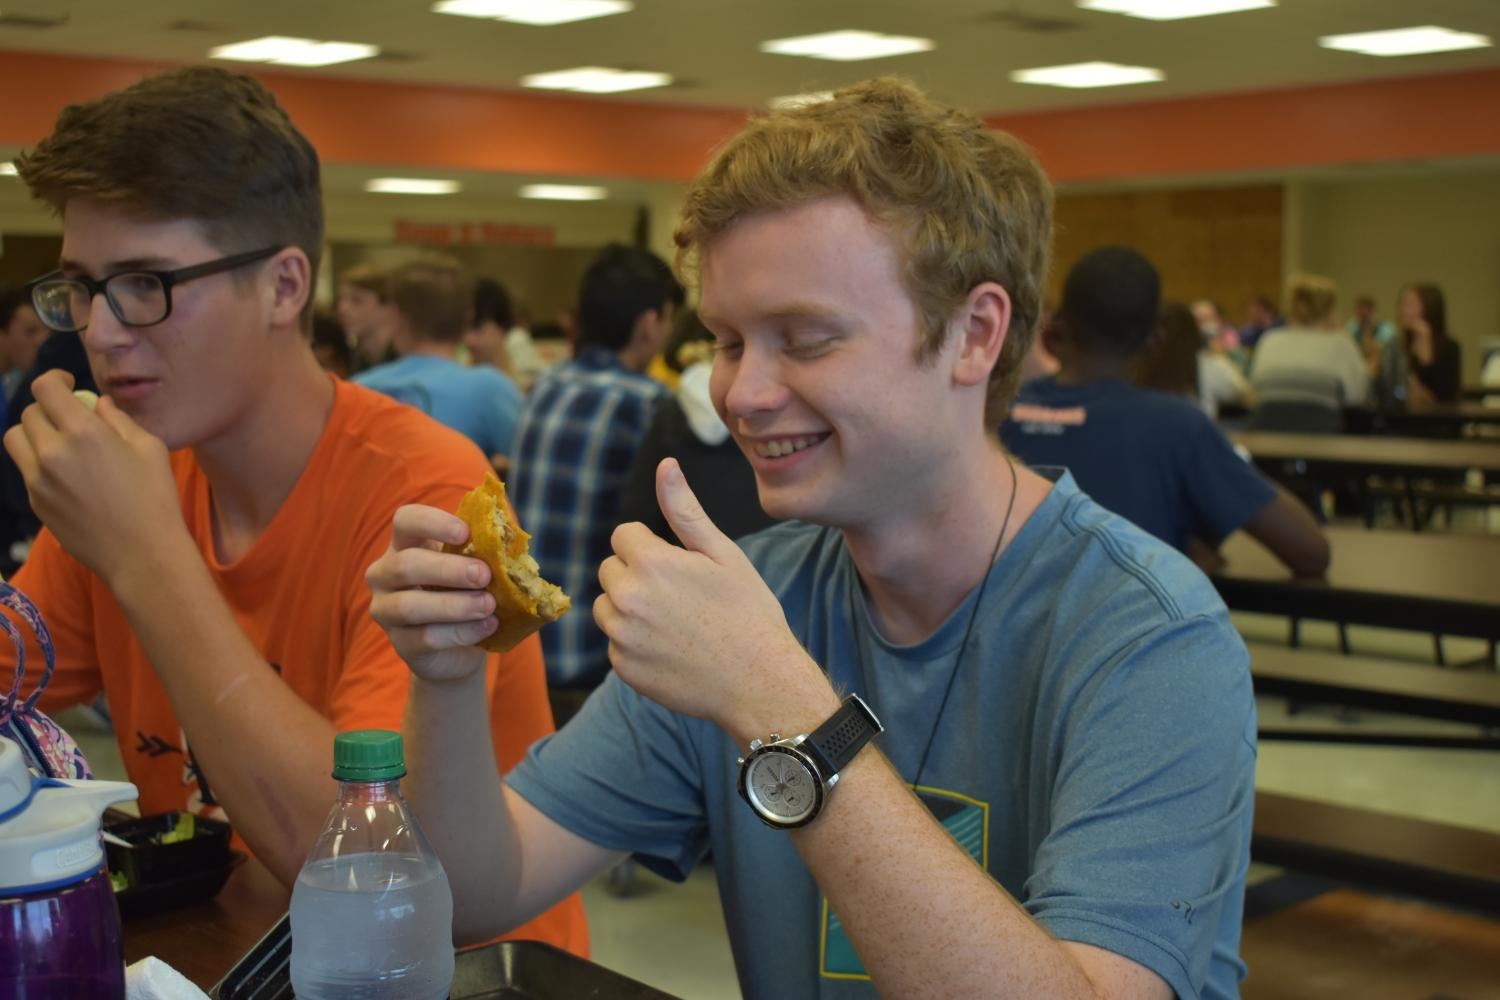 After taking the PSAT, students could look forward to the lunchroom's newest edition: The Epic Quesadilla. With tasty sautéed chicken, cheddar cheese. onions, and bell peppers, this new entree provides extra flavor and flair to the basic chicken nuggets and pizza in the lunch line. As of B lunch, around 50 quesadillas were sold and students appreciate the new food item.